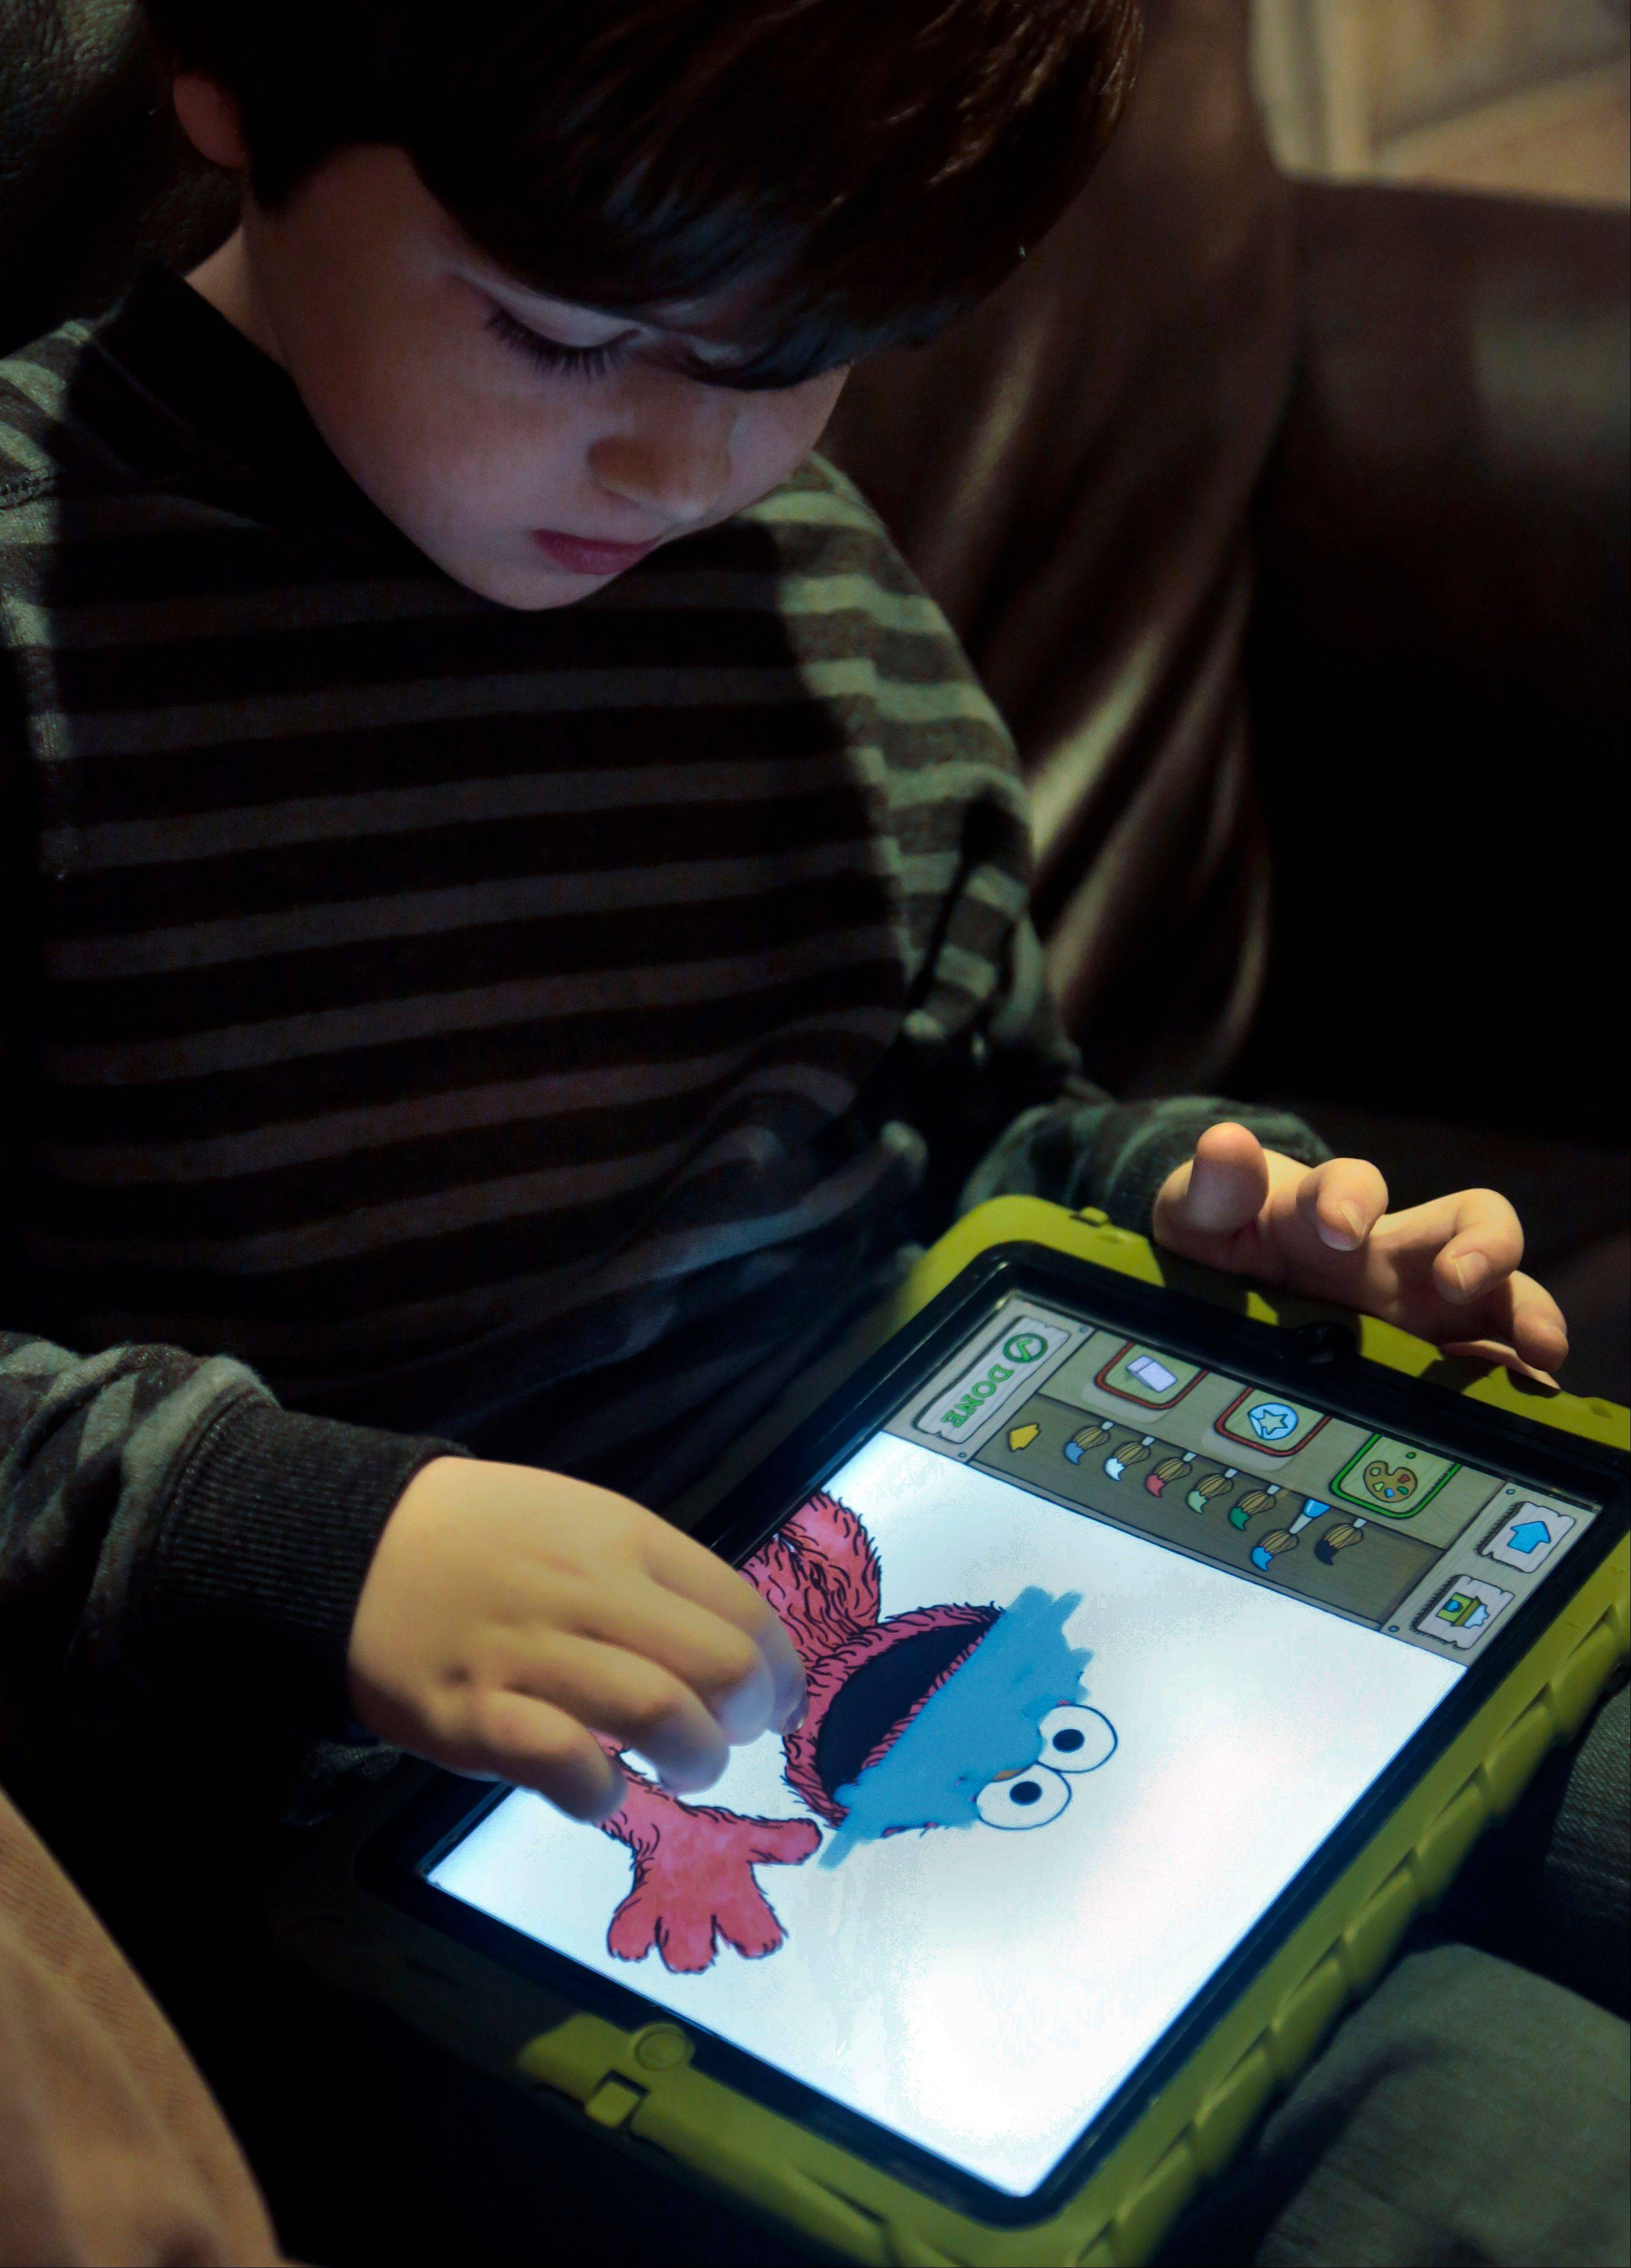 Tablets of all types are expected to rank among the top holiday gifts for children this year, but some experts and advocates question the educational or developmental benefits for youngsters.